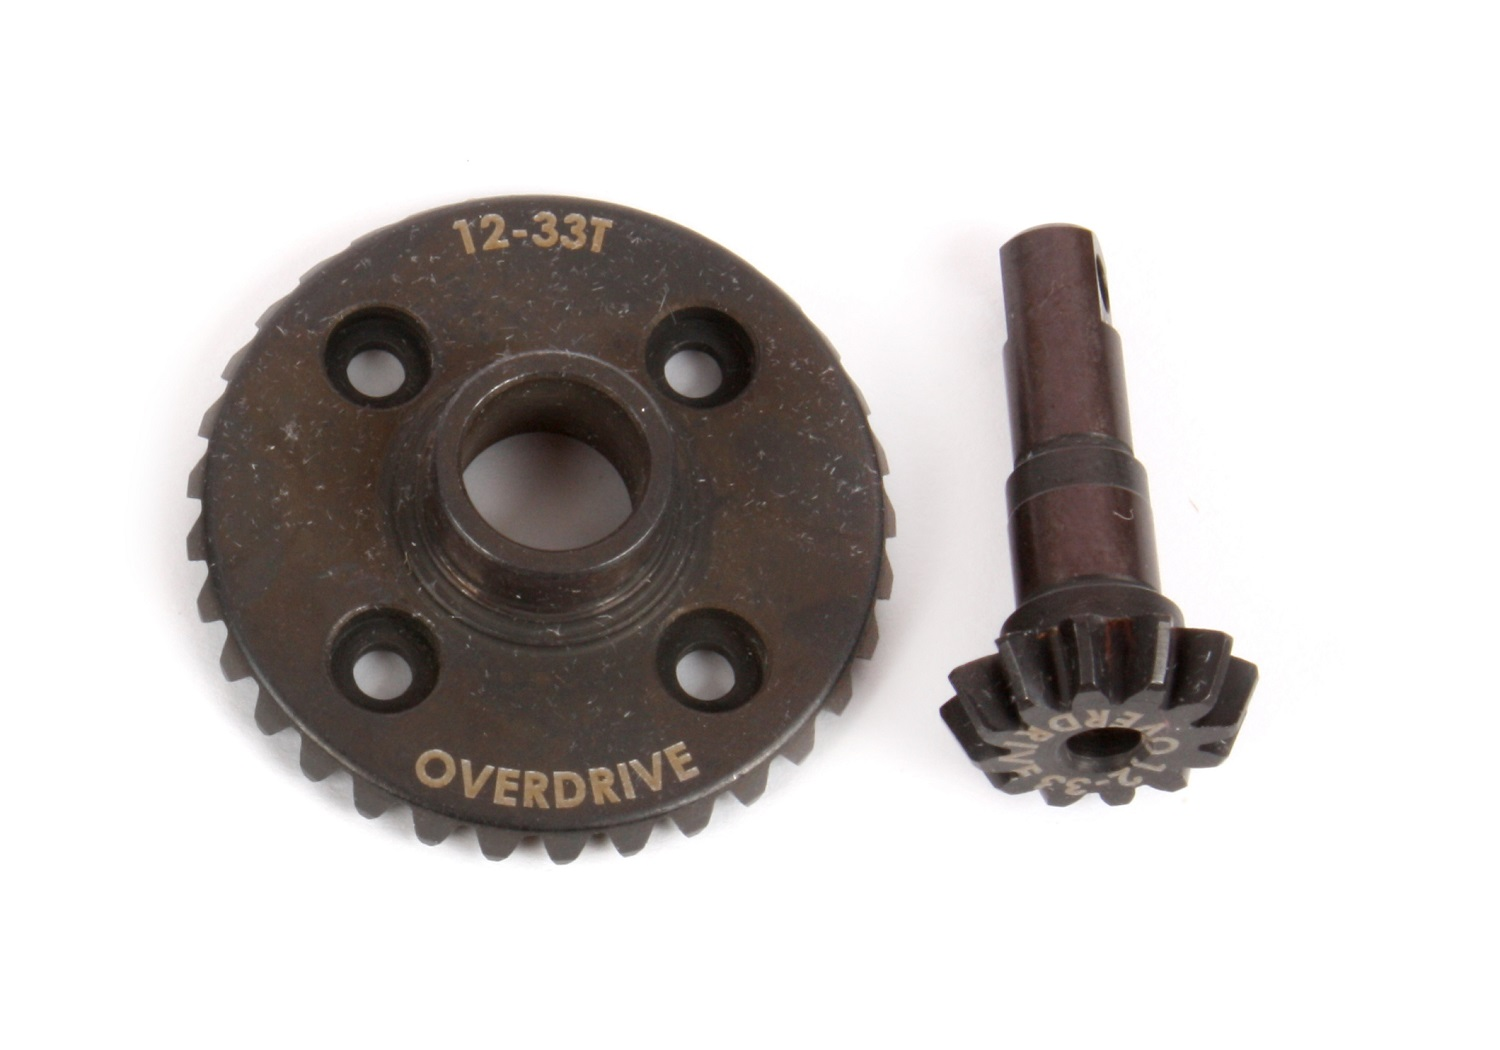 12-33 overdrive gears